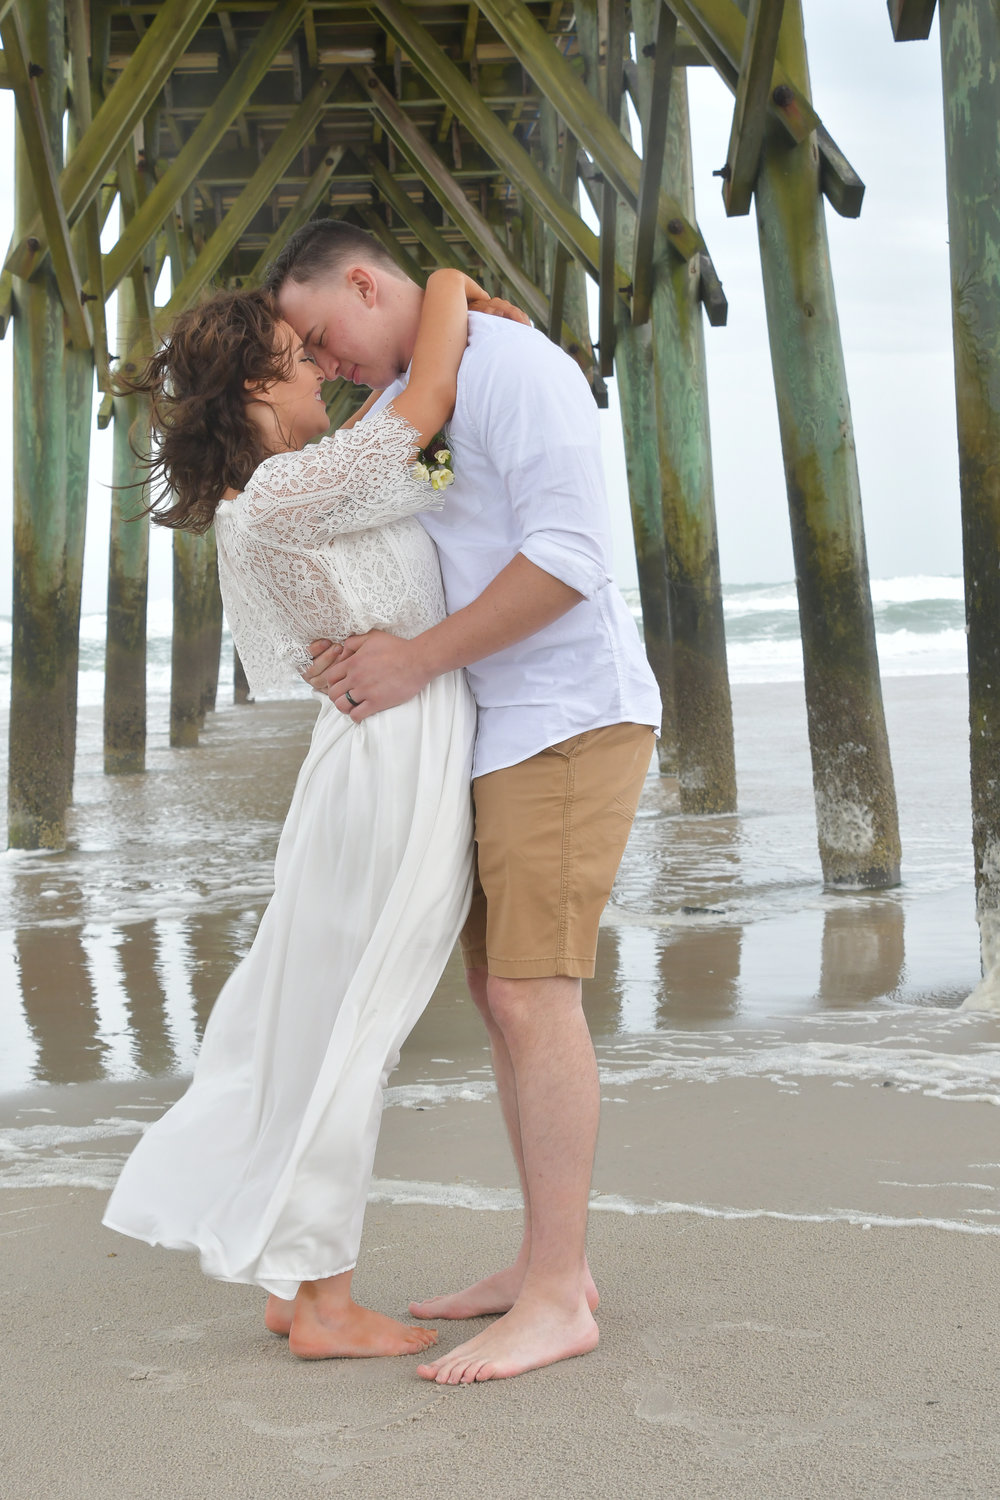 Pier - Bride and groom share a moment under the Surf City Pier, on Topsail Island, NC. Billy Beach Photography.